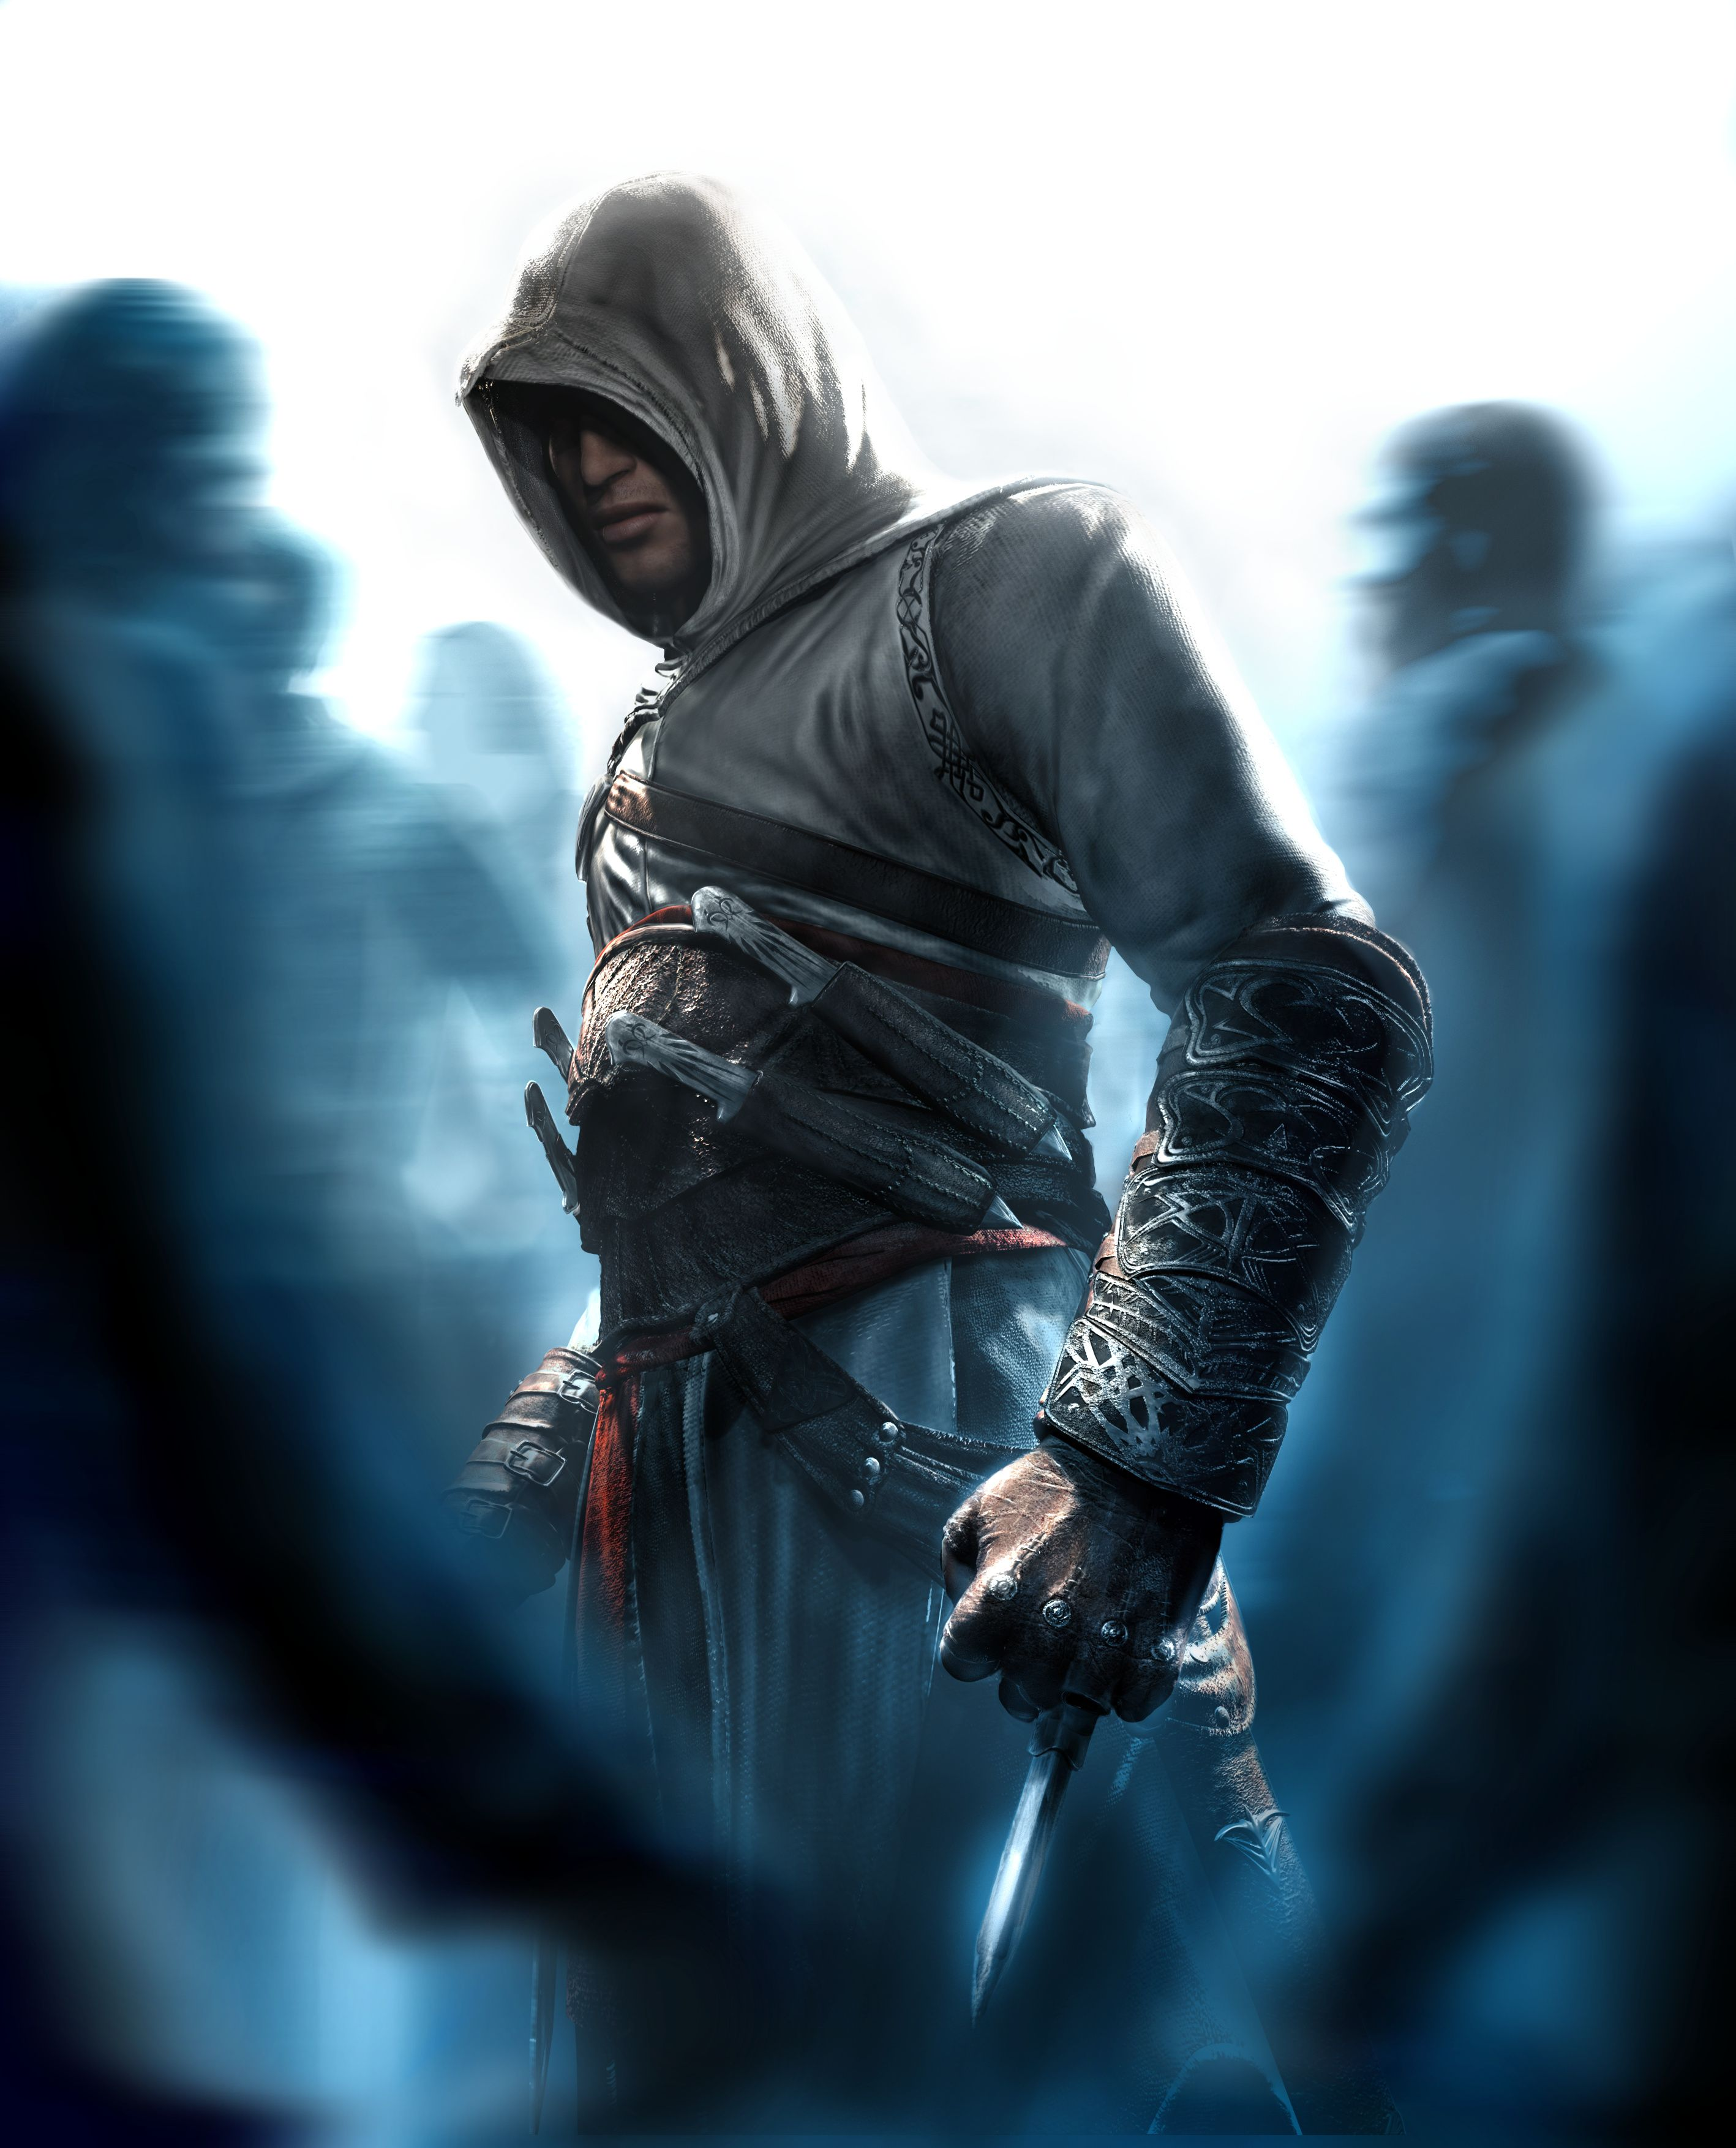 Pin by Andrew Stepanov on Мульты Assassin's creed